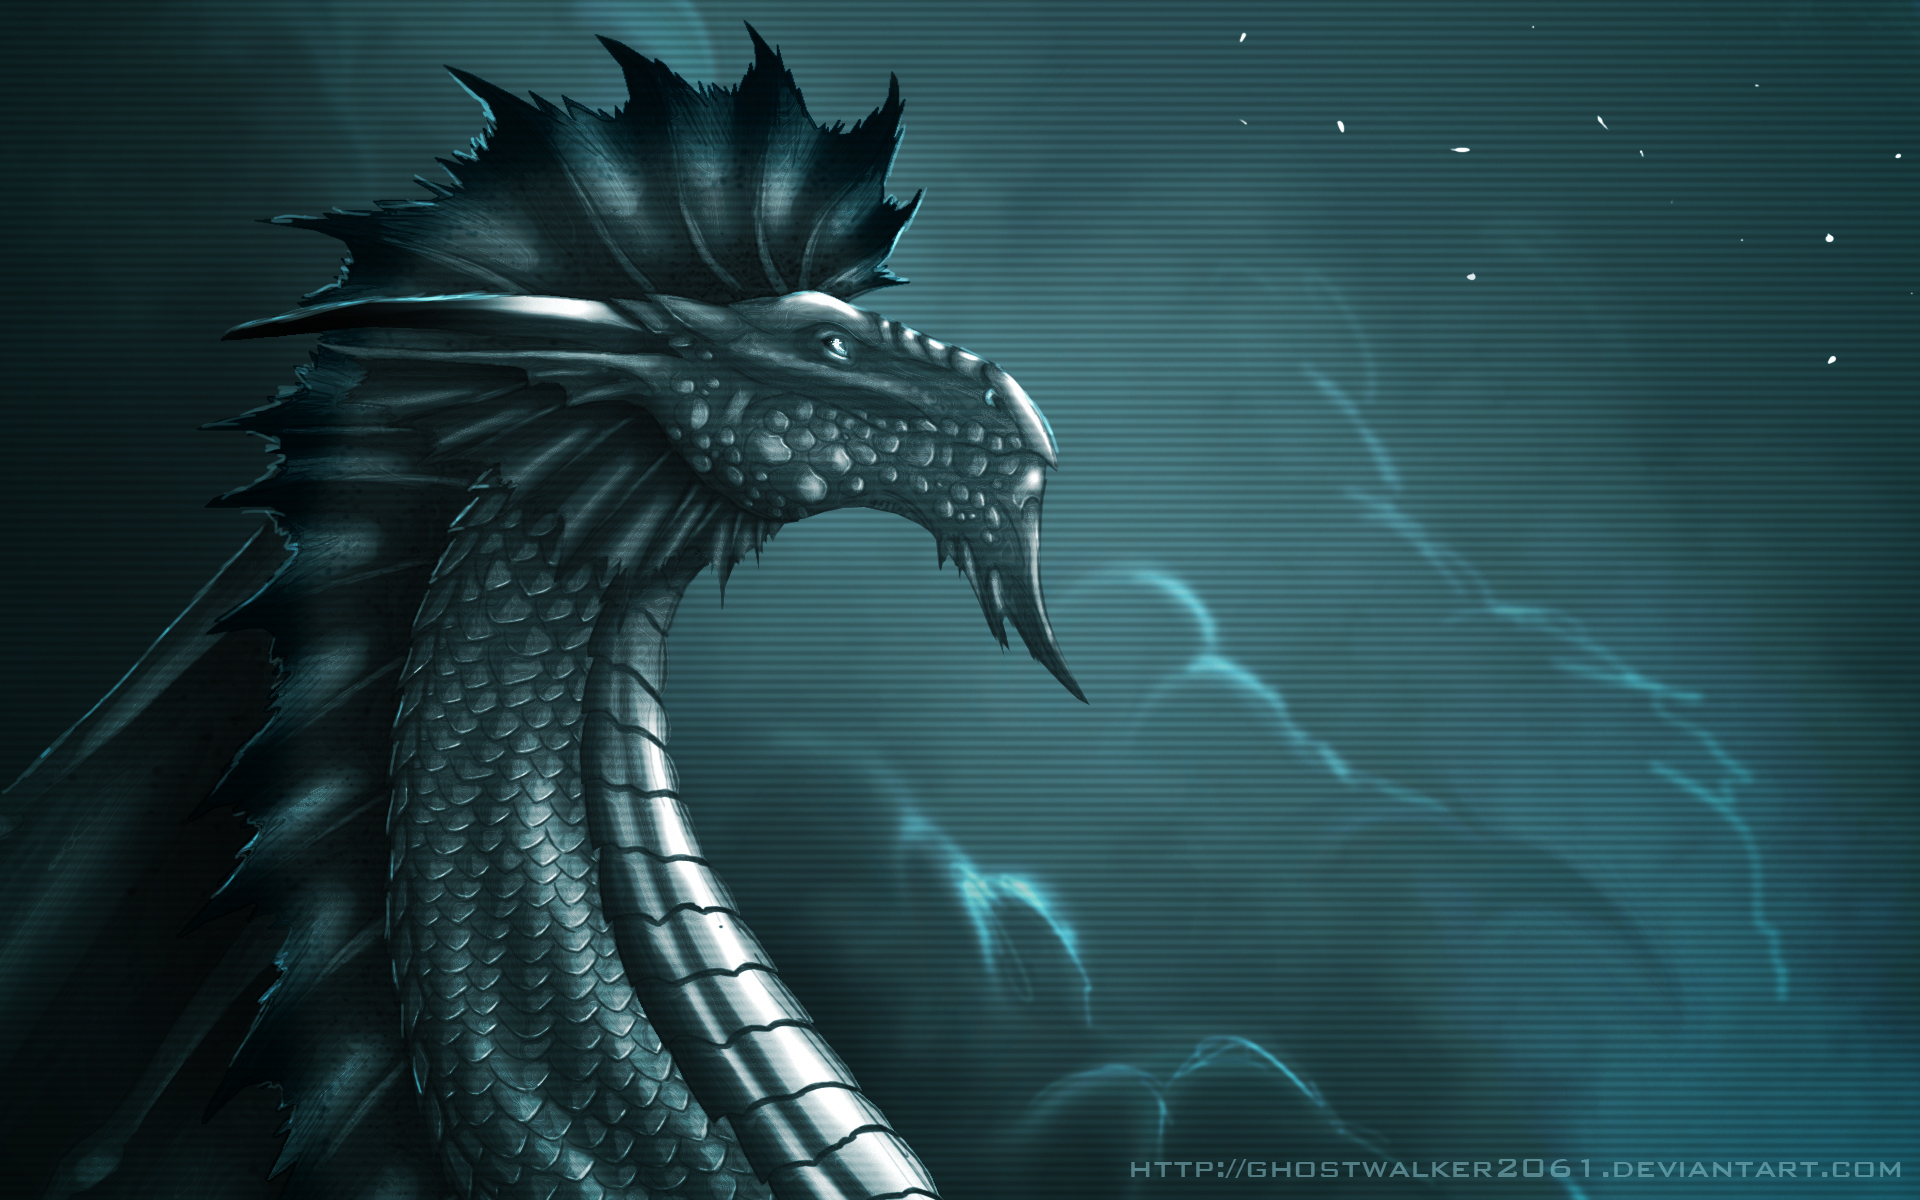 Silver Dragon Wallpaper By Ghostwalker2061 On Deviantart